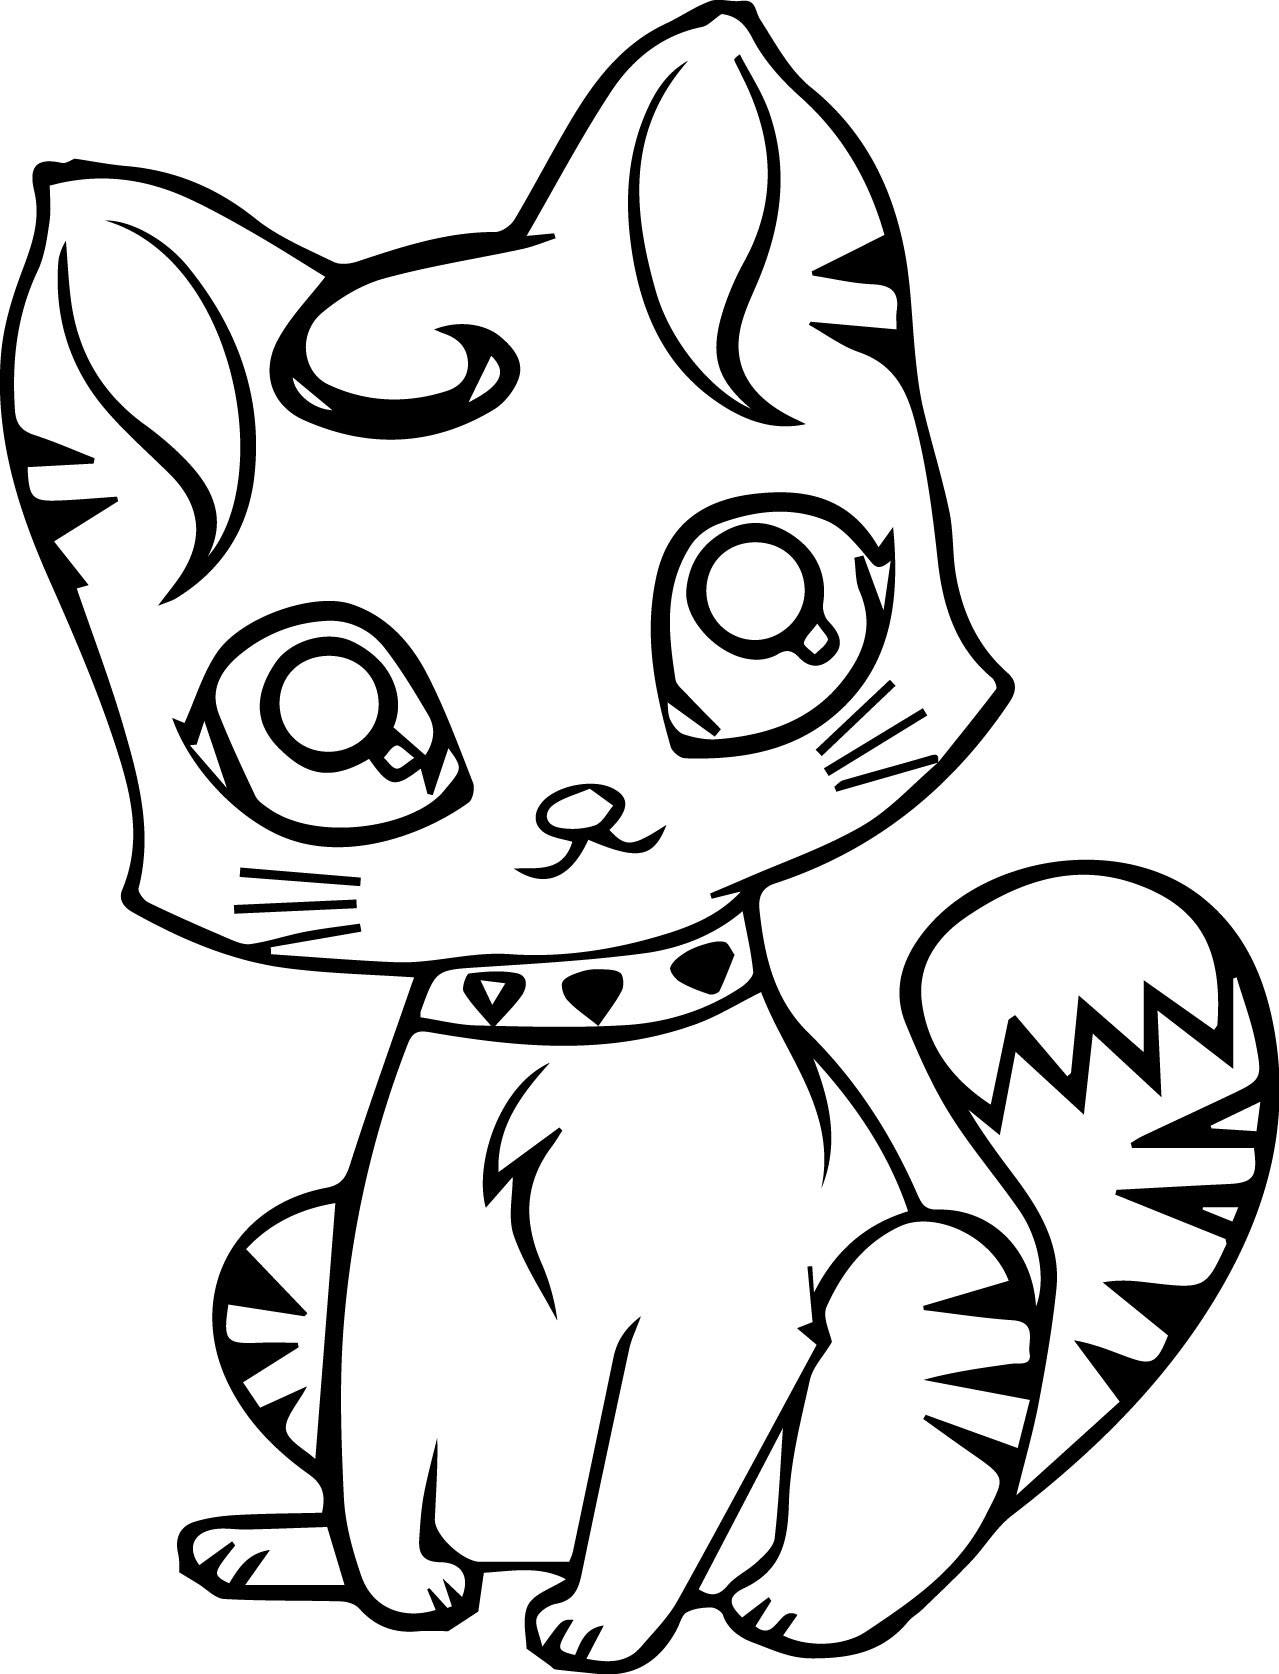 Cat Coloring Pages at GetColorings.com | Free printable ...